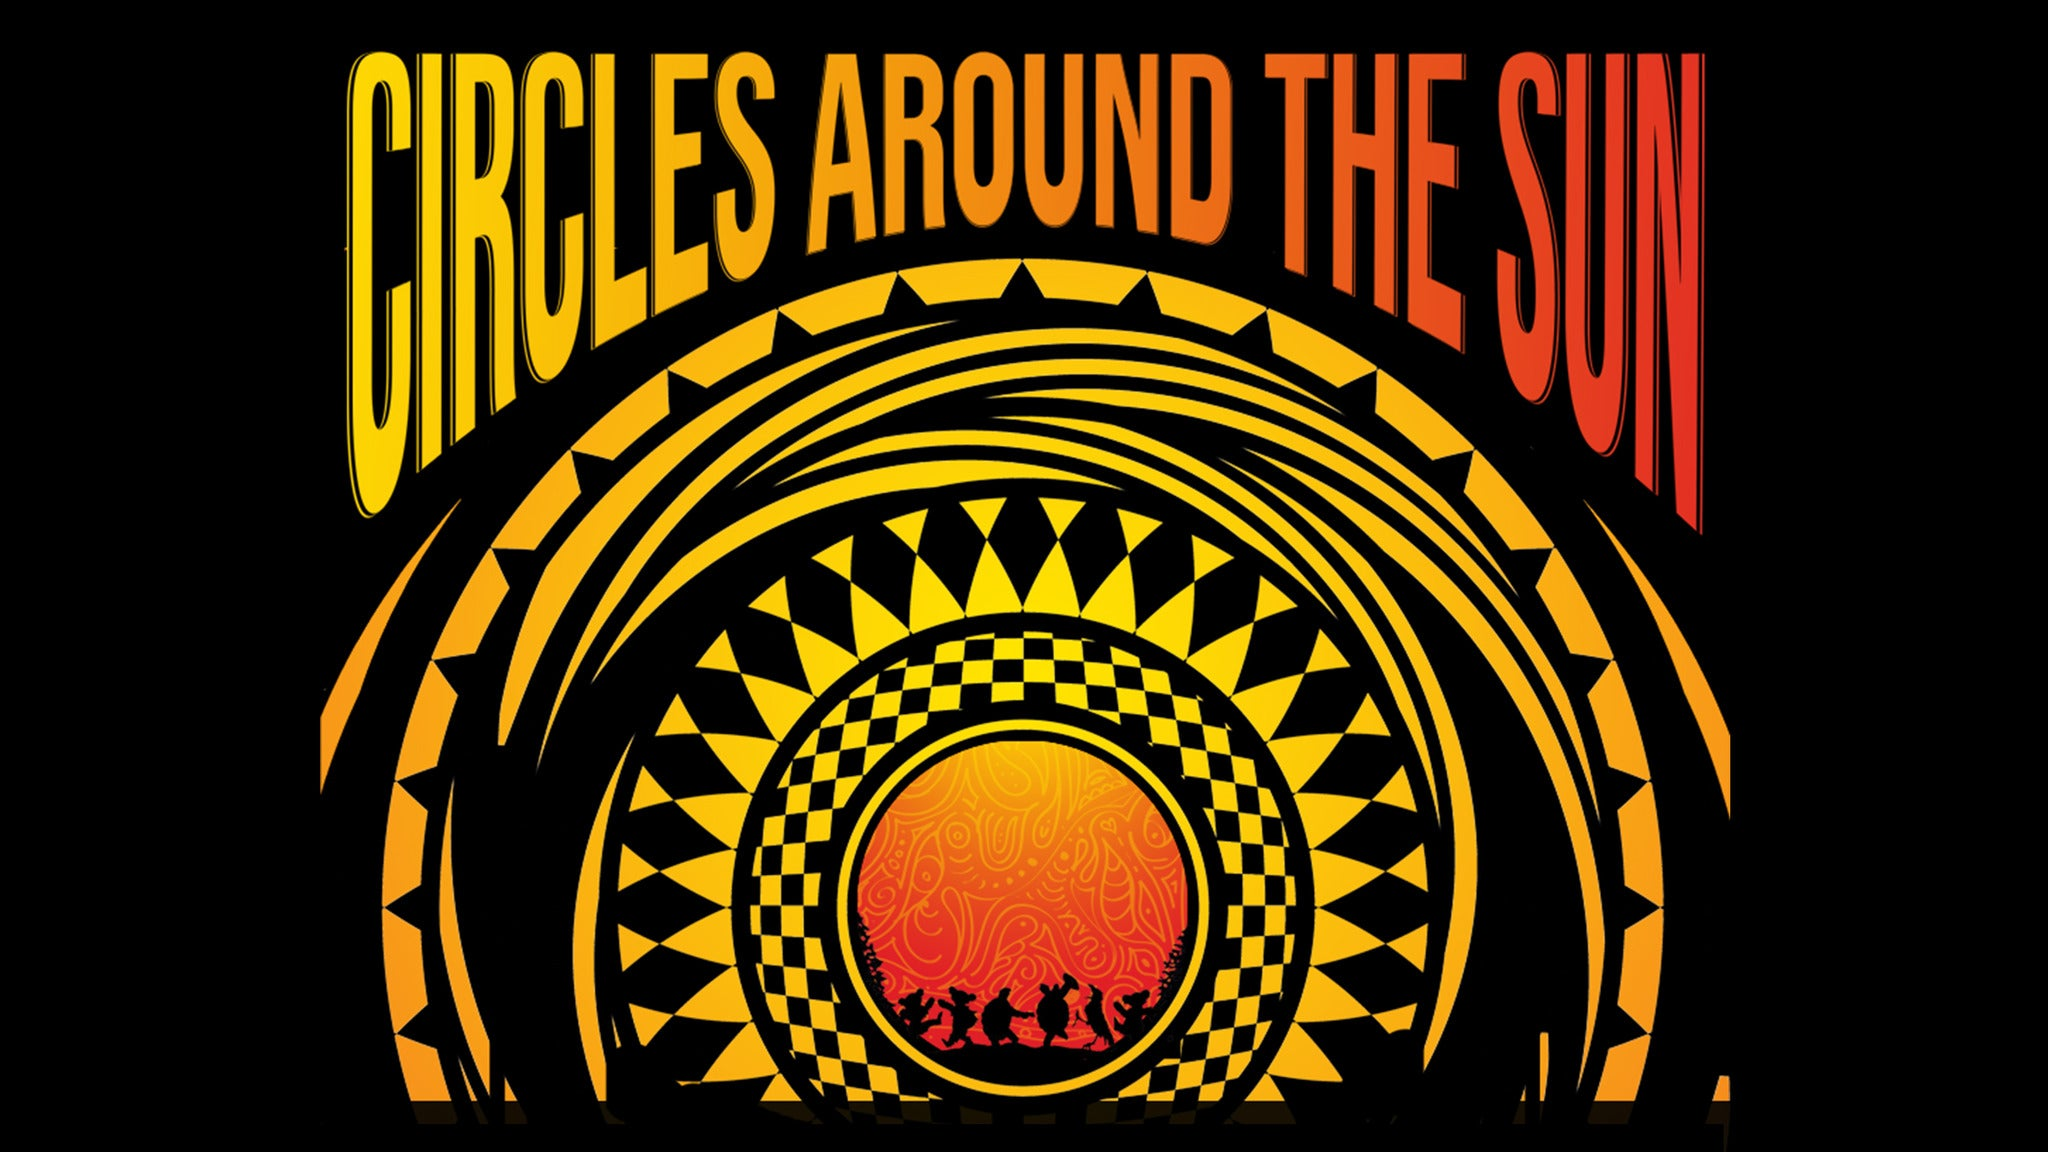 Circles Around the Sun at Gothic Theatre